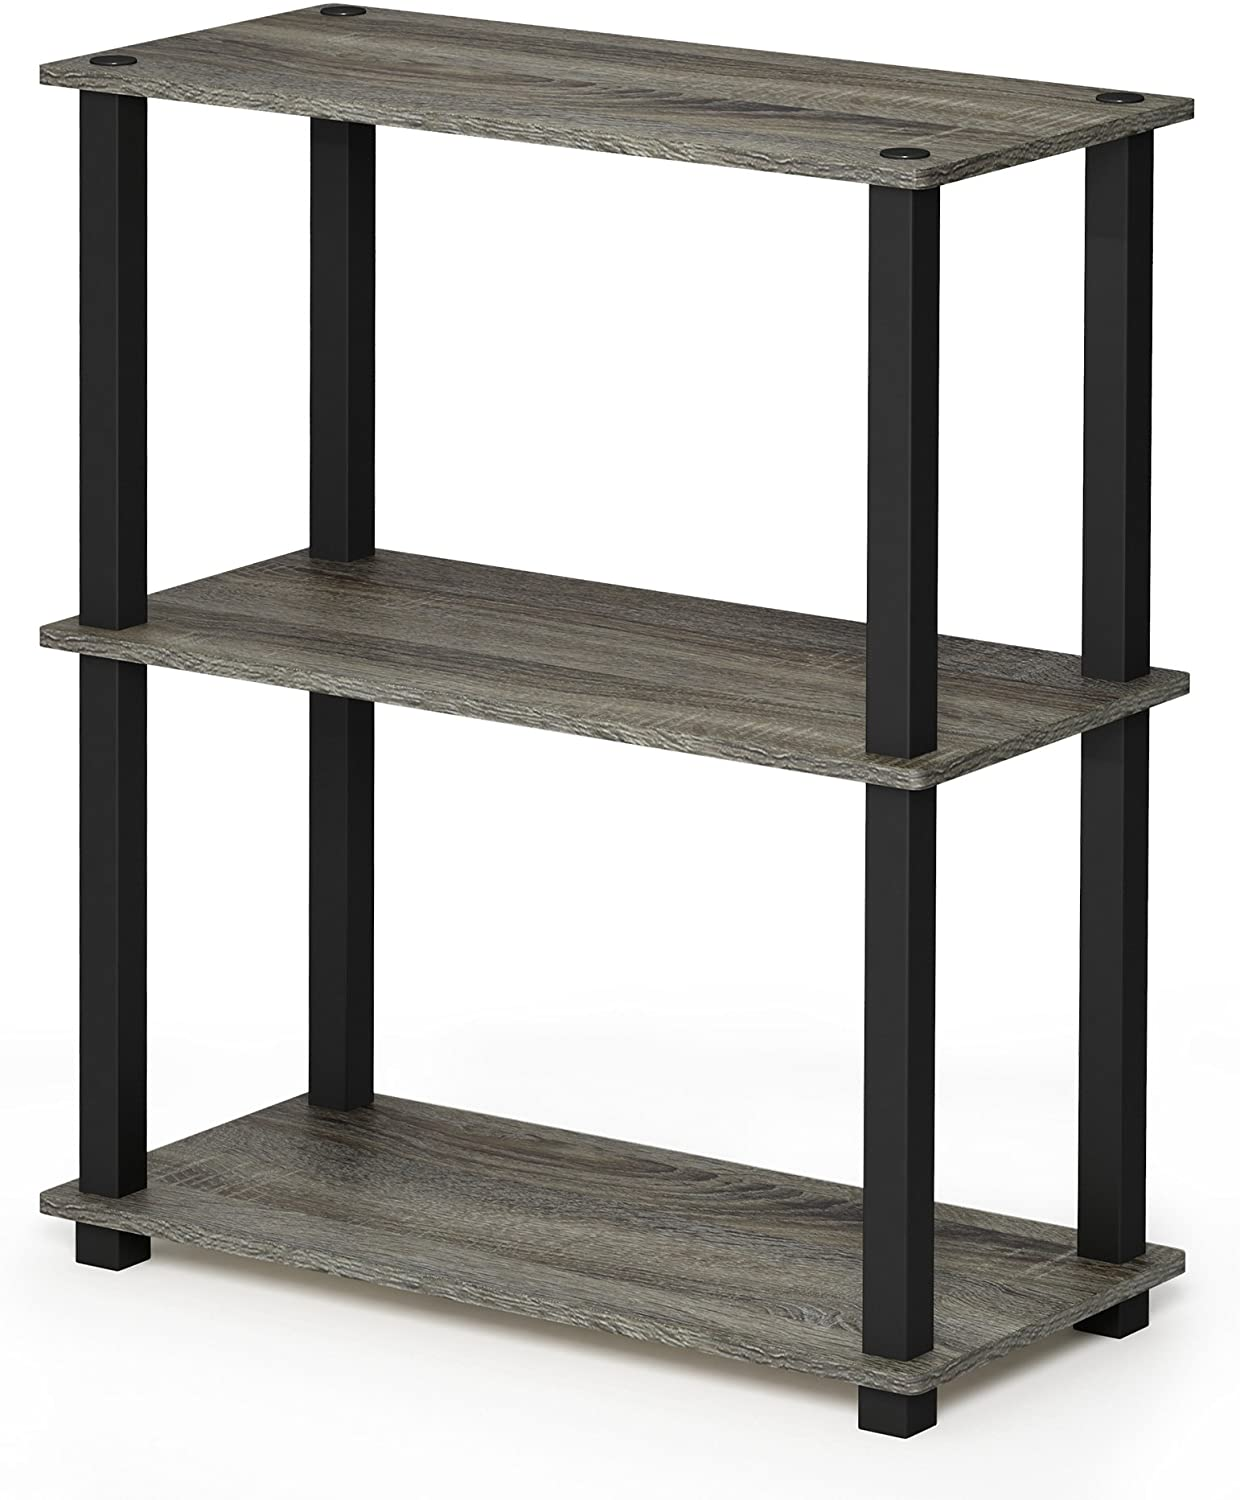 FURINNO 18025GYW/BK Turn-S-Tube 3-Tier Compact Multipurpose Shelf Display Rack, Square, French Oak Grey/Black